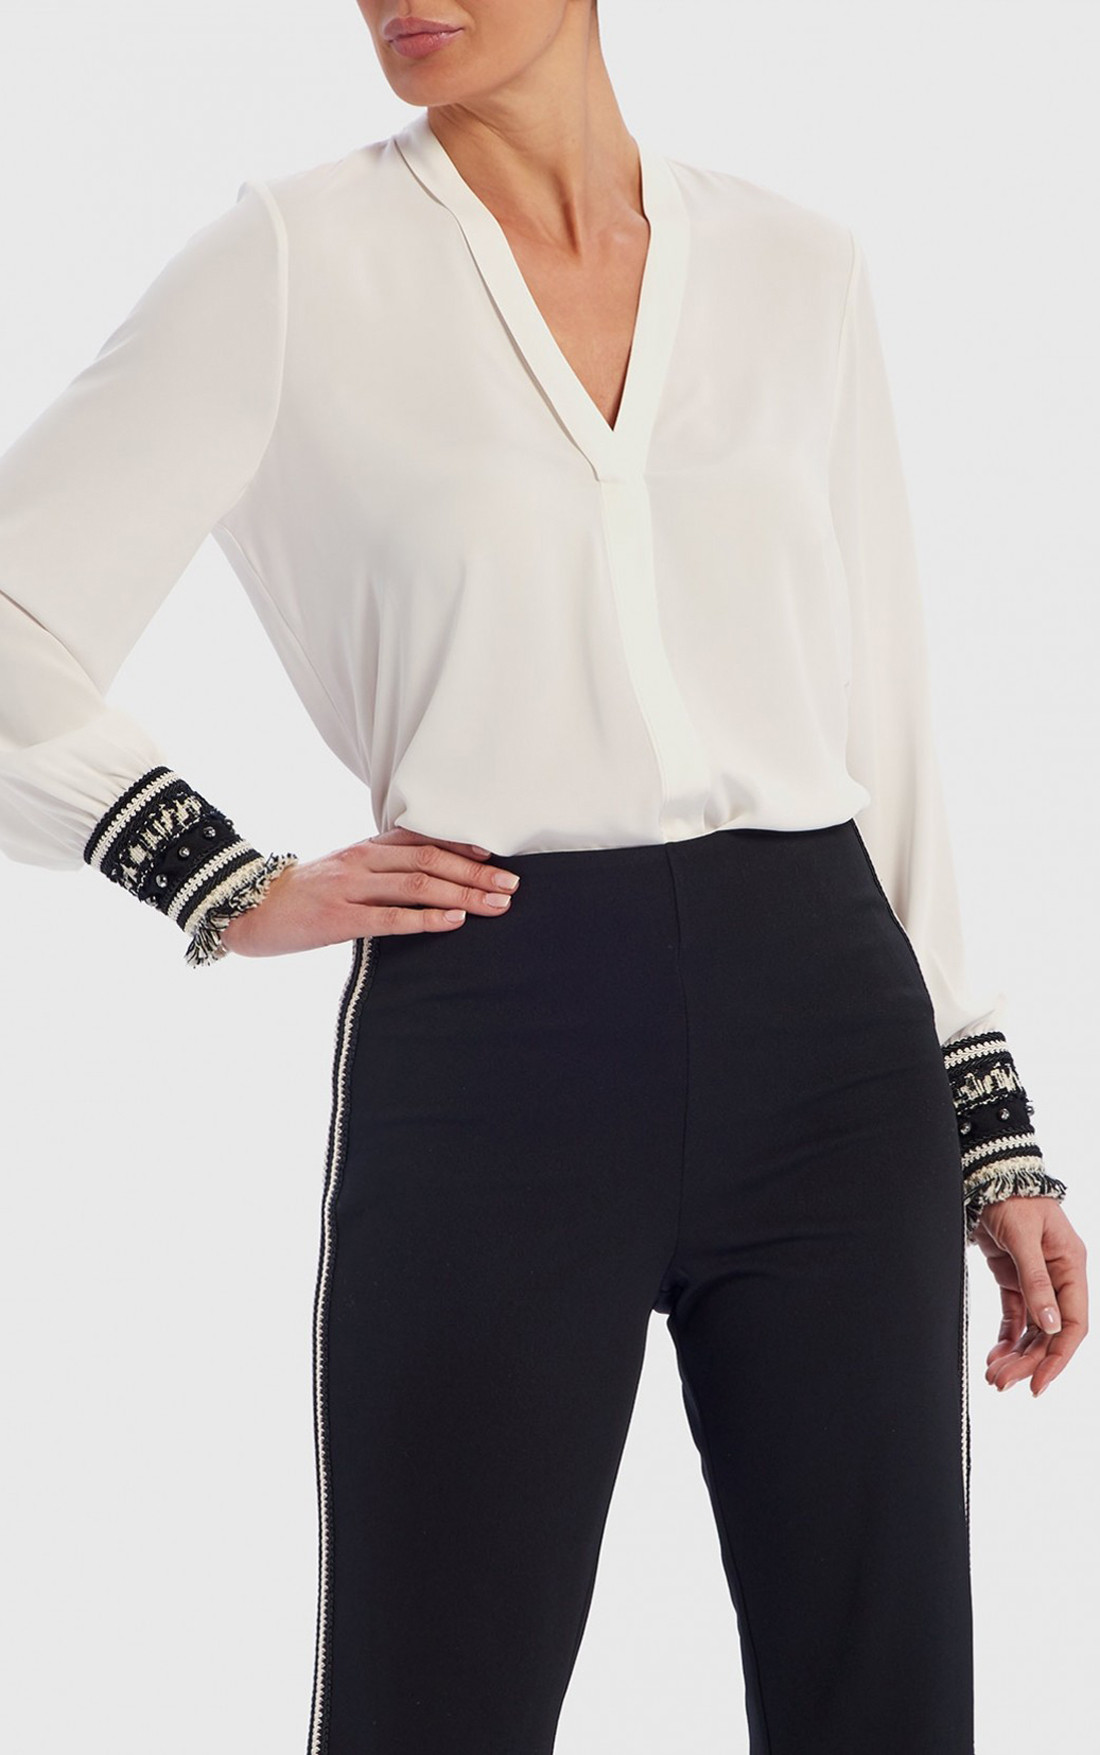 Forever Unique - Carrie White Blouse With Monochrome Tasseled Cuffs (TJ9733)